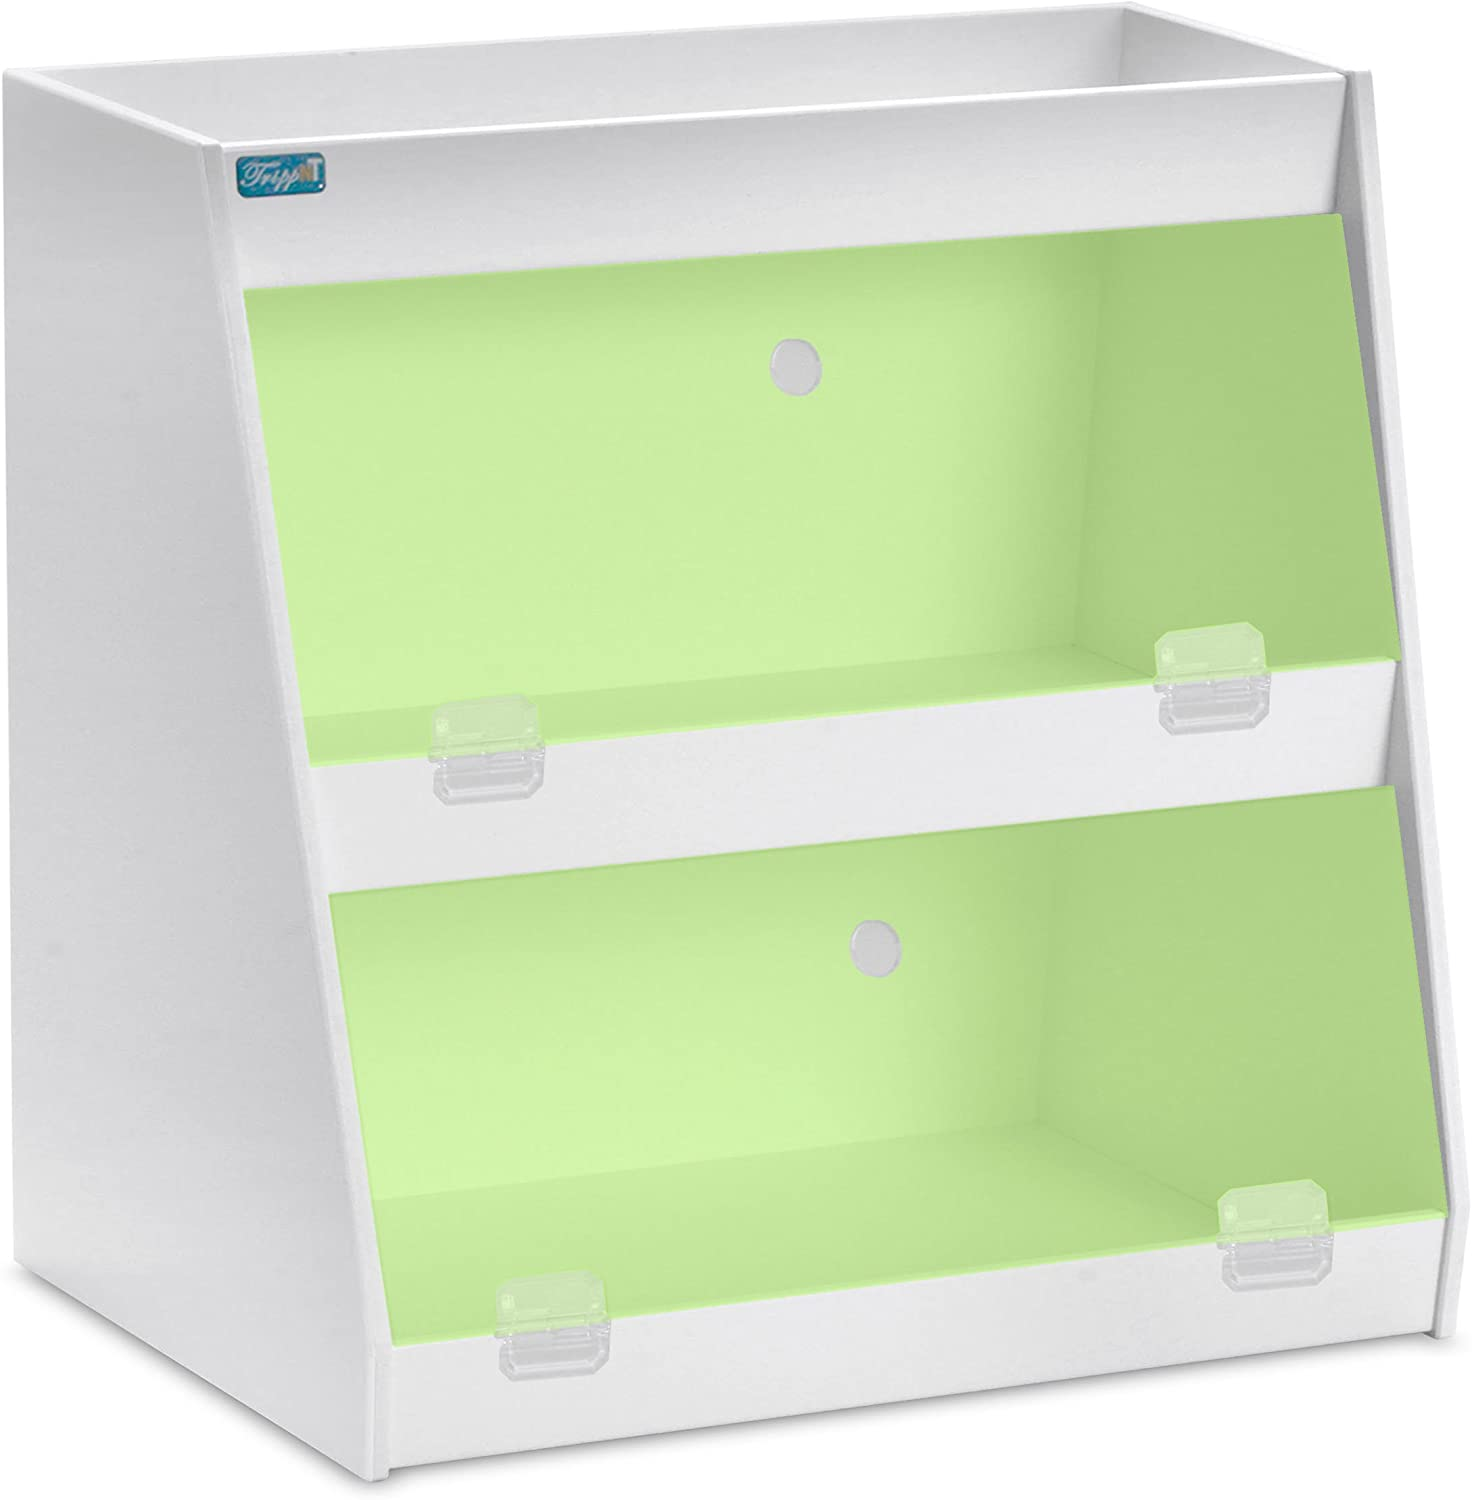 TrippNT 50106 PVC Angled Triple Safety Shelves with Green Door, 12-Inch Width x 12-Inch Height x 9-Inch Depth, Green White